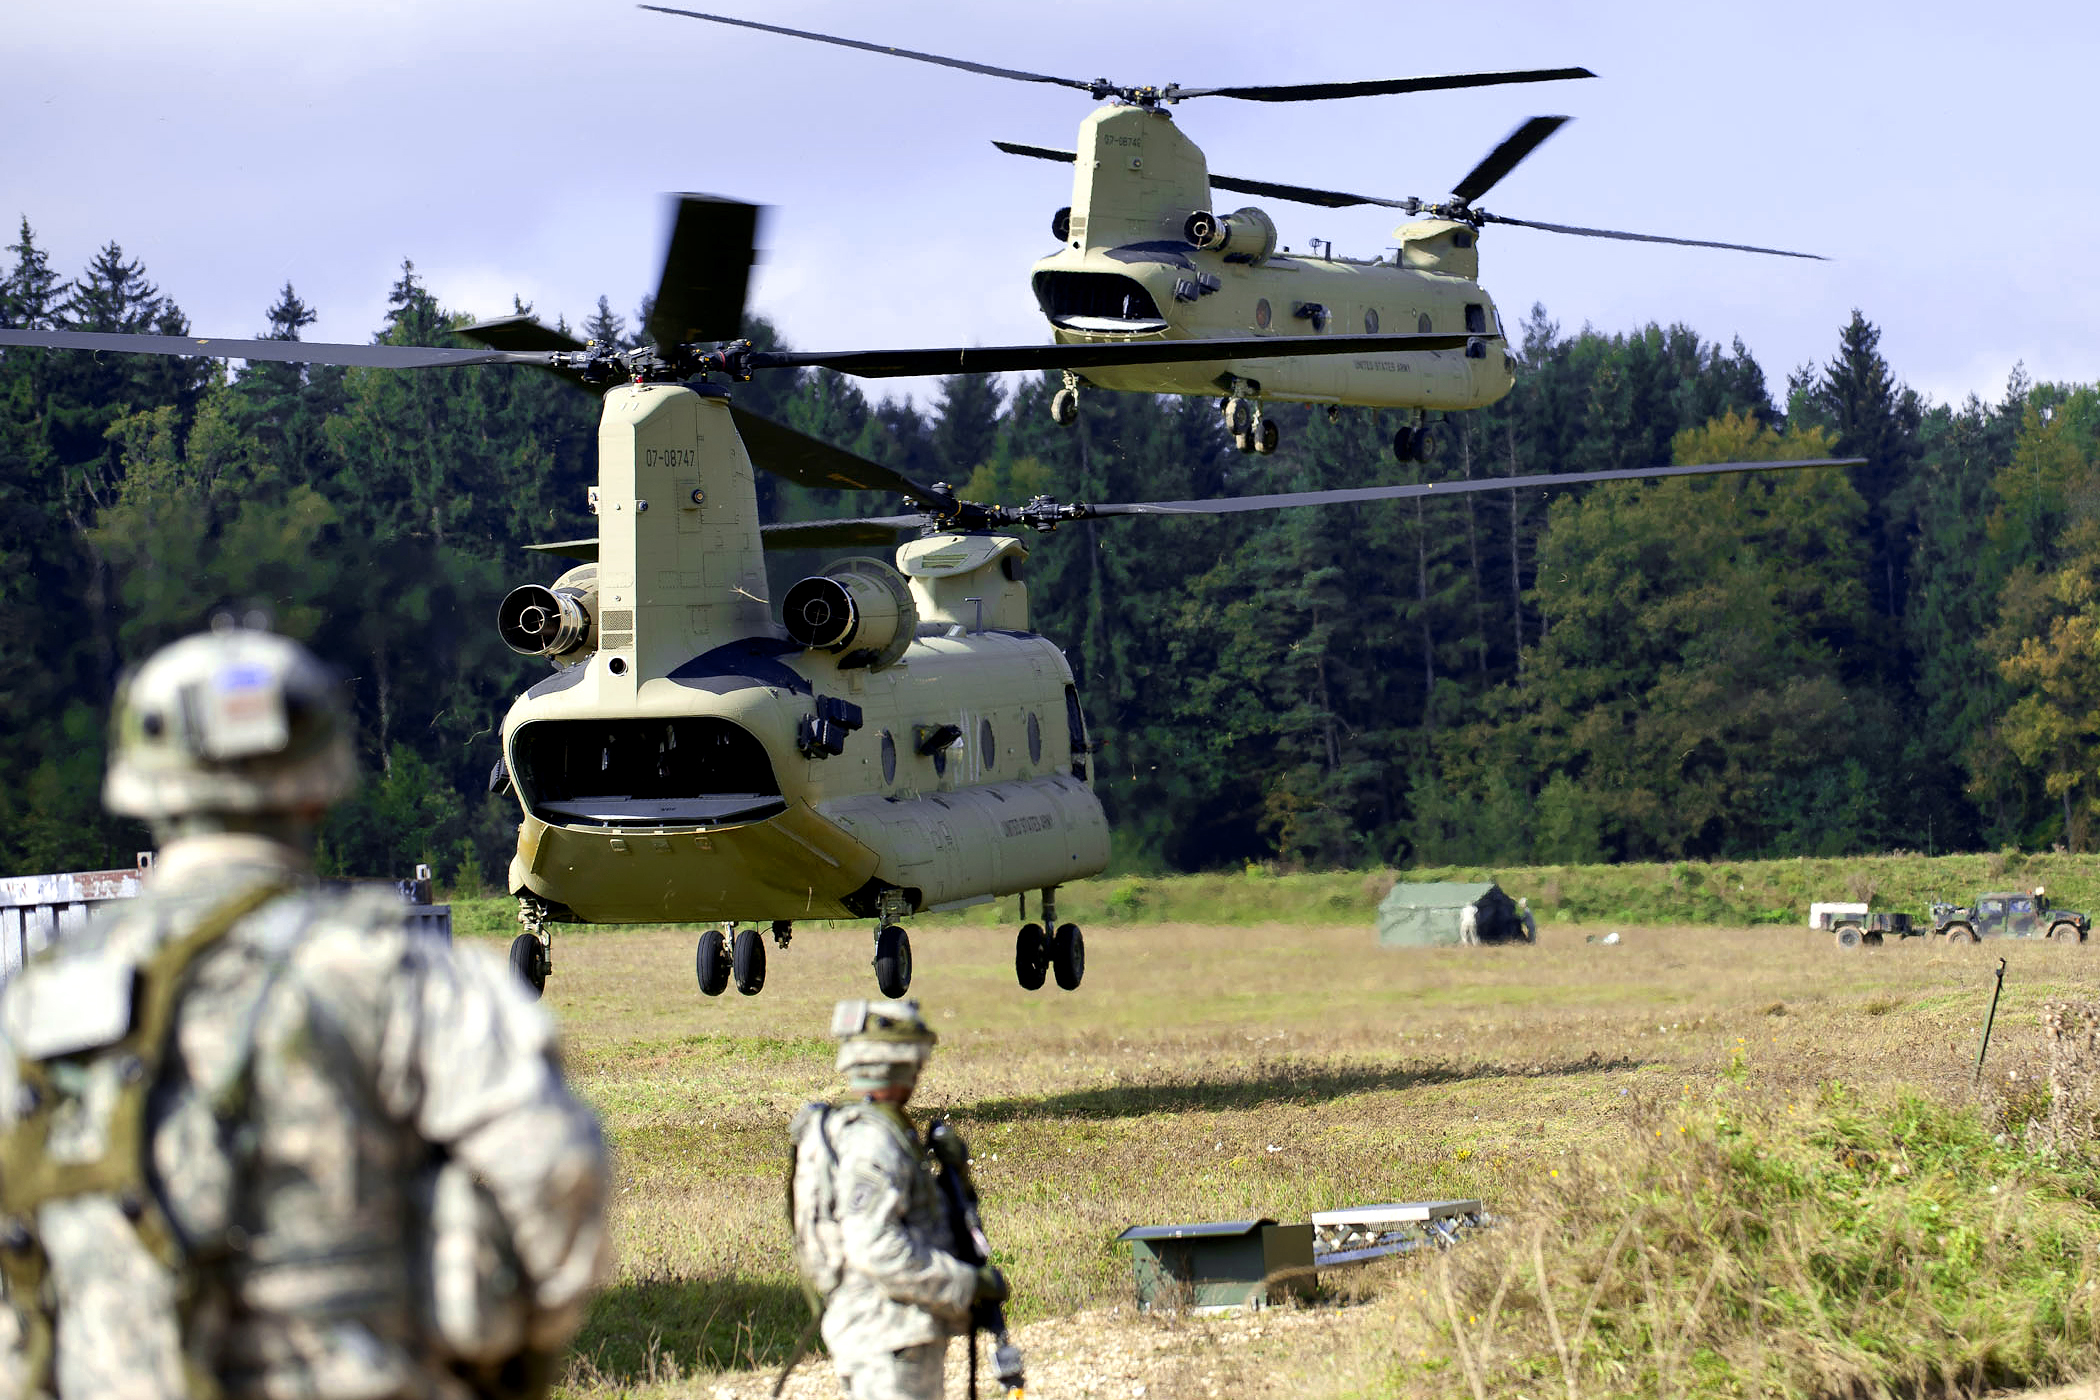 Two Chinooks and four Blackhawks, along with two Apache gunships to provide air support, all from the 12th Combat Aviation Brigade, support soldiers assigned to the 173rd Airborne Brigade Combat Team that are going to air assault into an objective as part